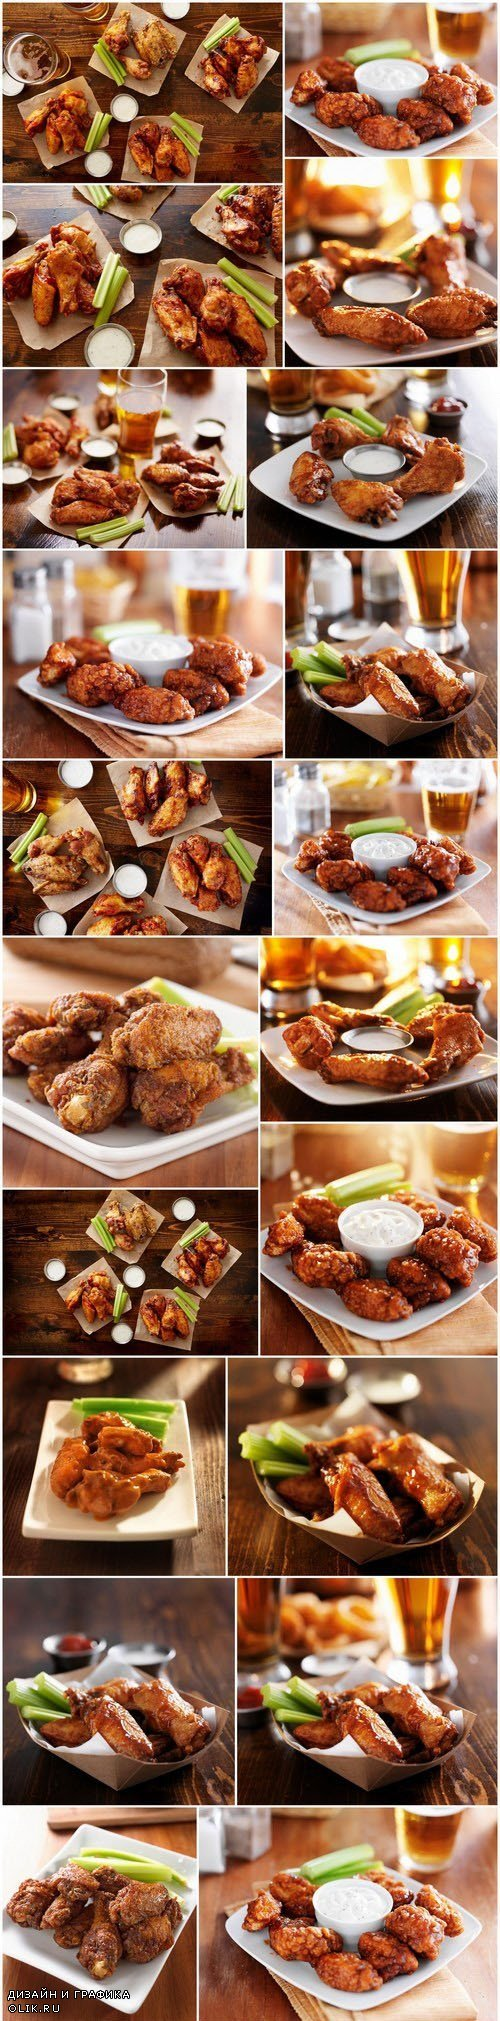 Buffalo barbecue hot chicken wings around ranch sauce - 21xUHQ JPEG